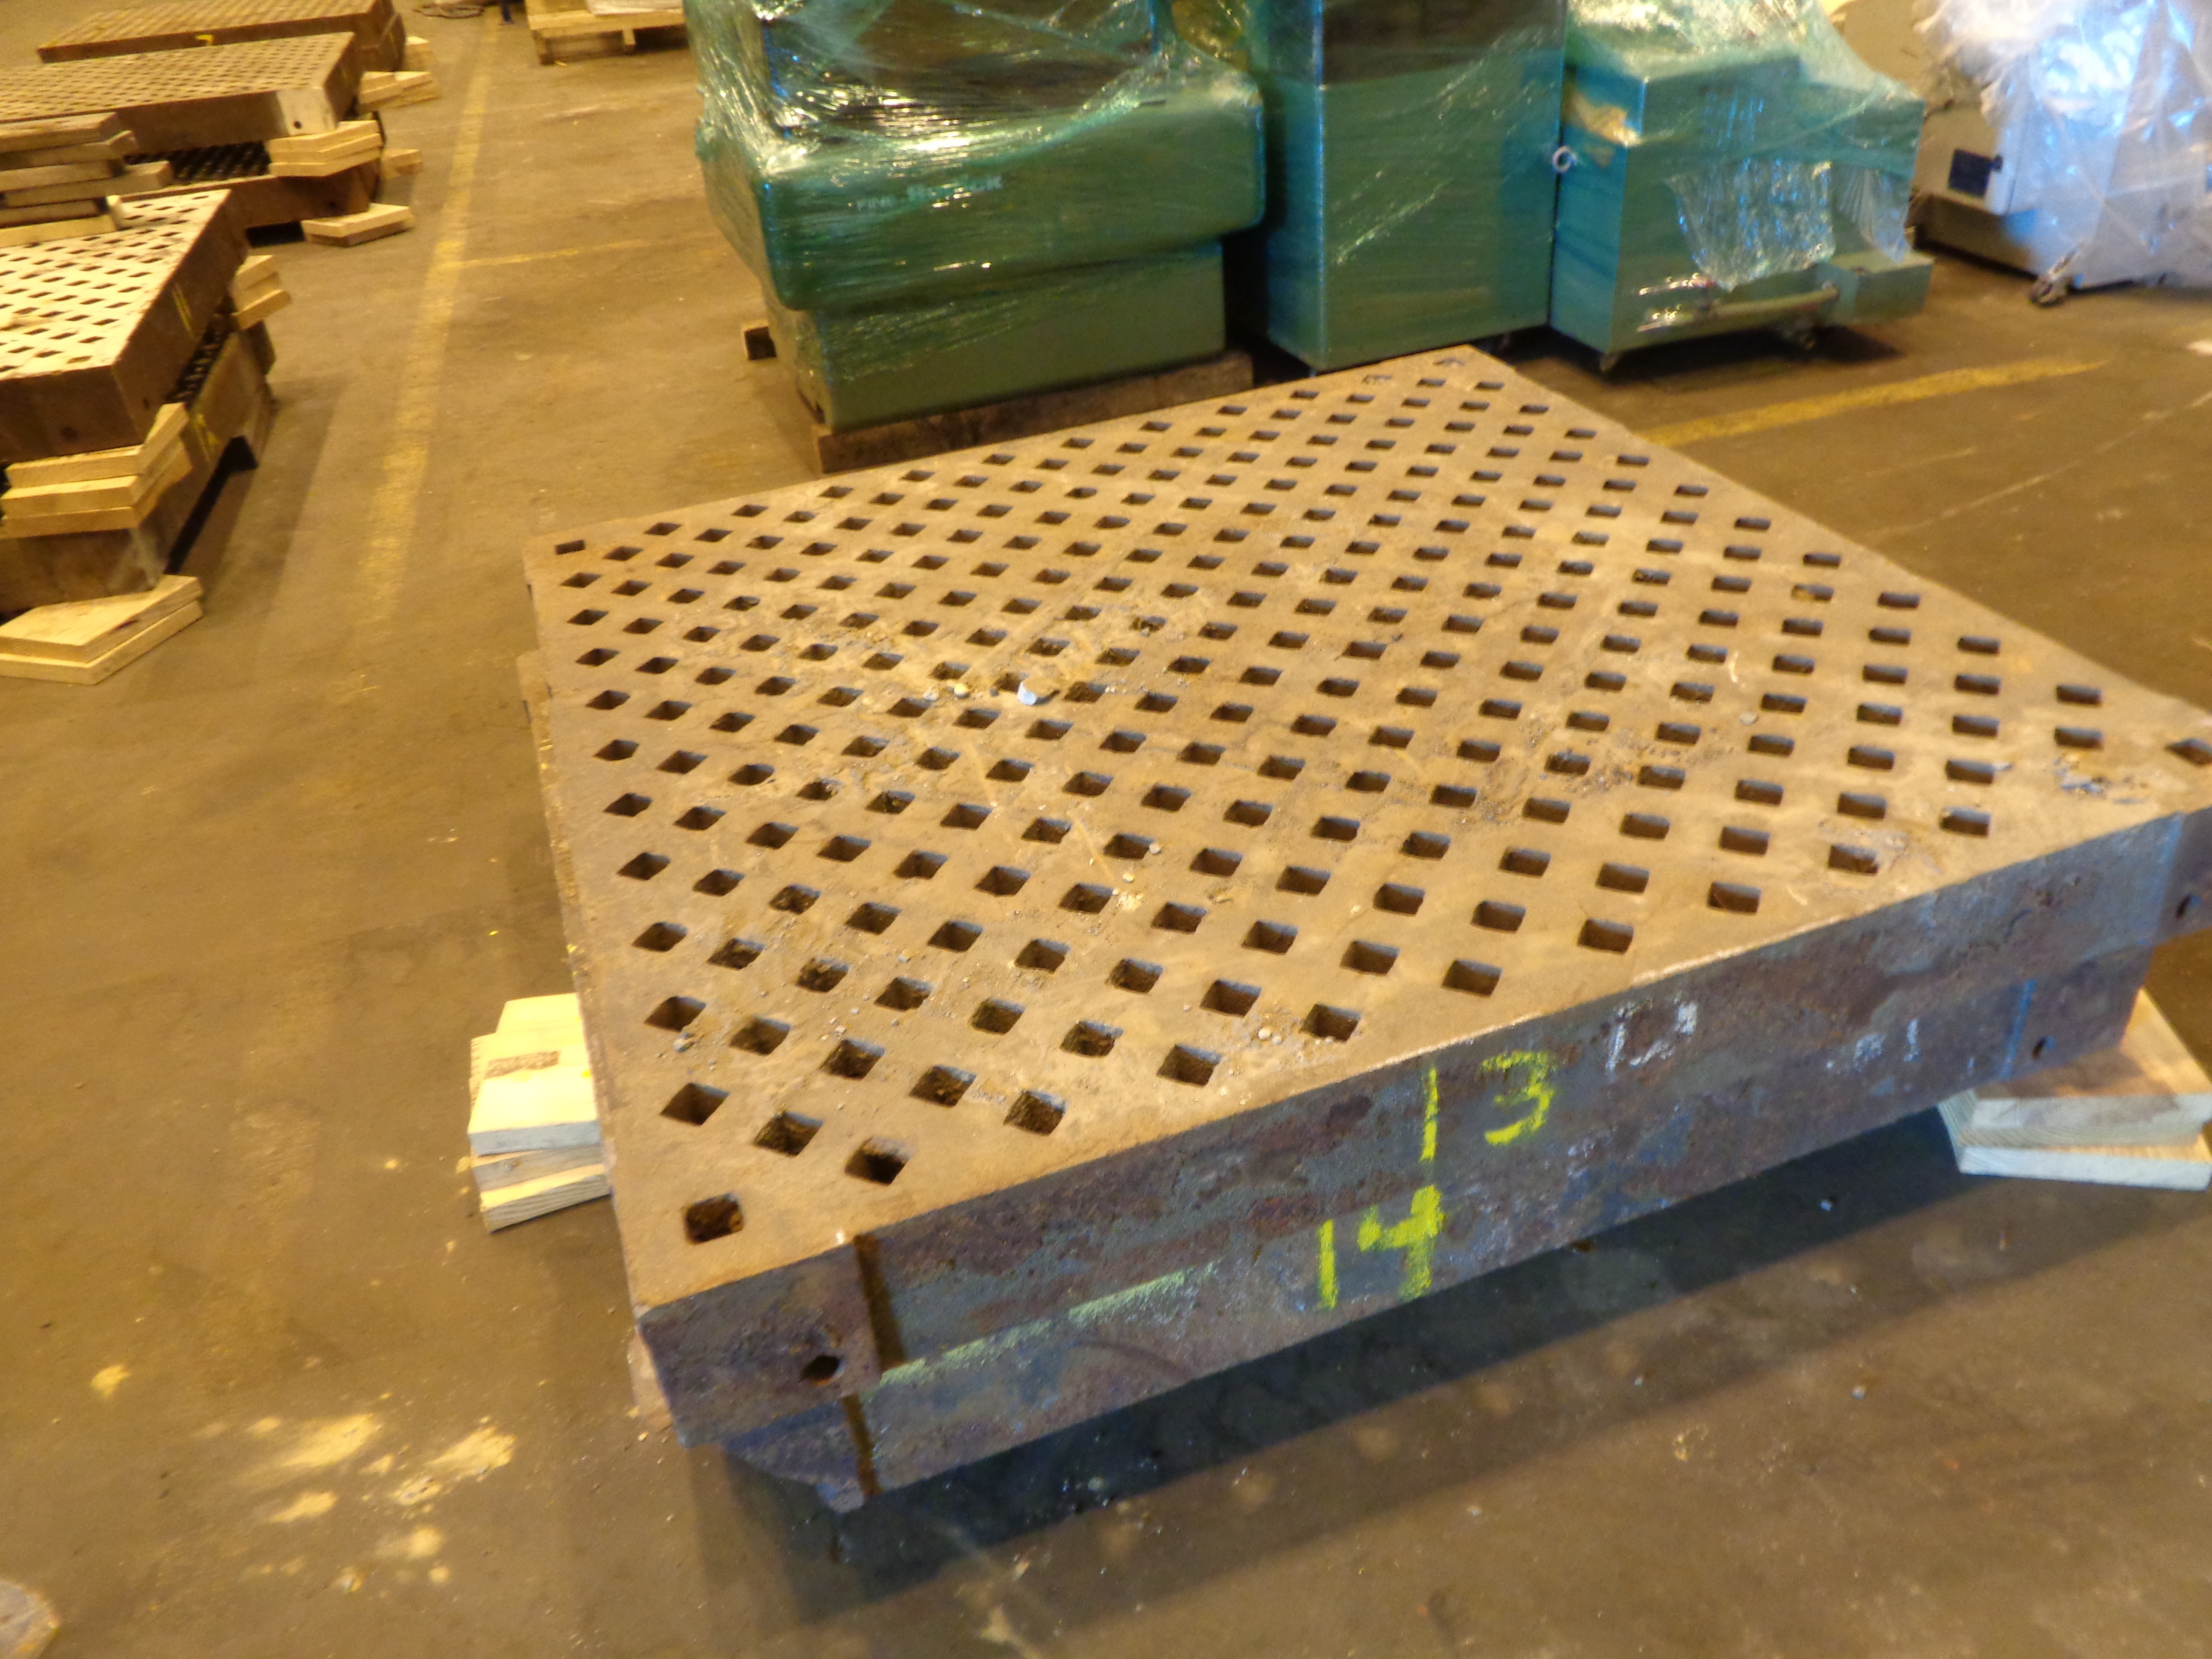 Lot 27 - Lot of 2 Acorn Welding Tables #13 and #14